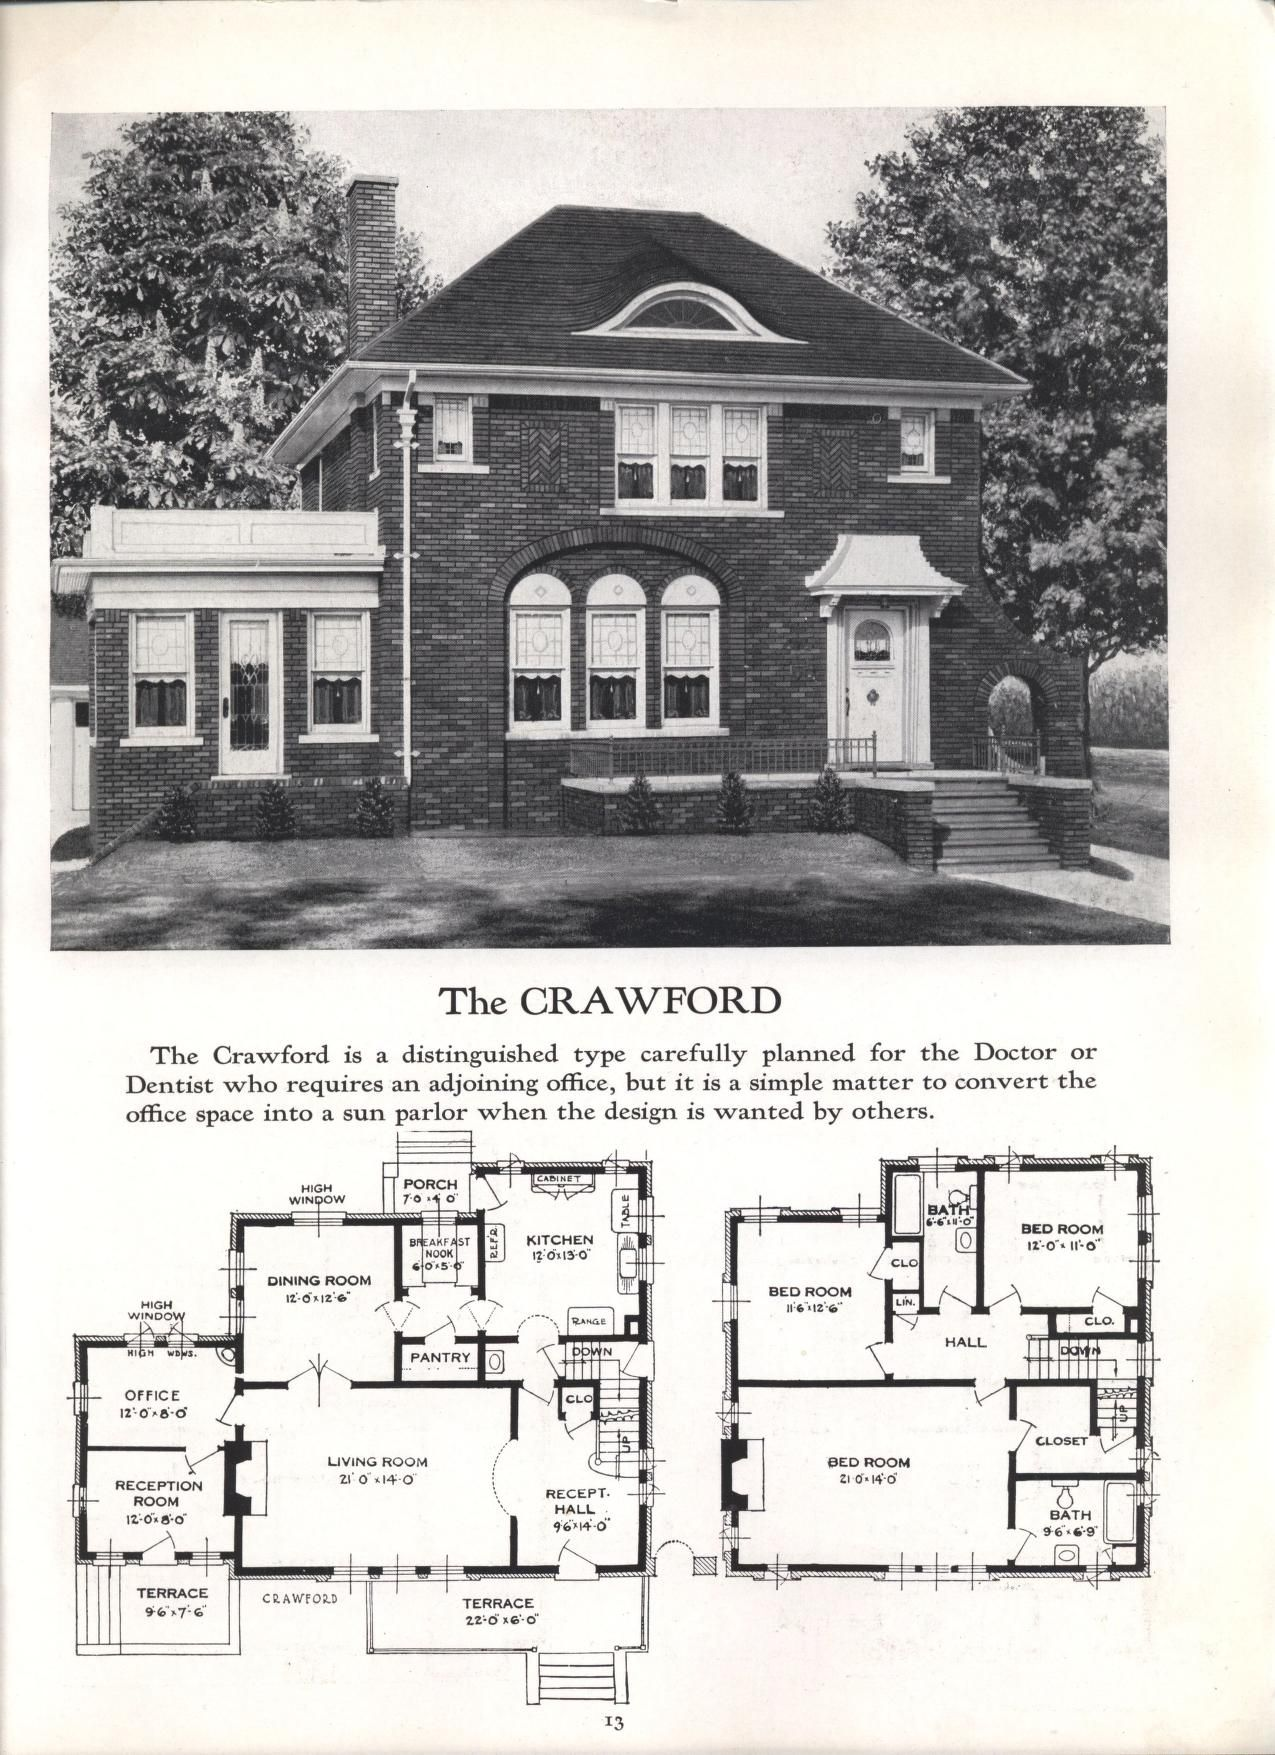 Better Homes At Lower Cost No 17 By Standard Homes Co Publication Date 1930 The Crawford Vintage House Plans Architecture House Cottage Floor Plans